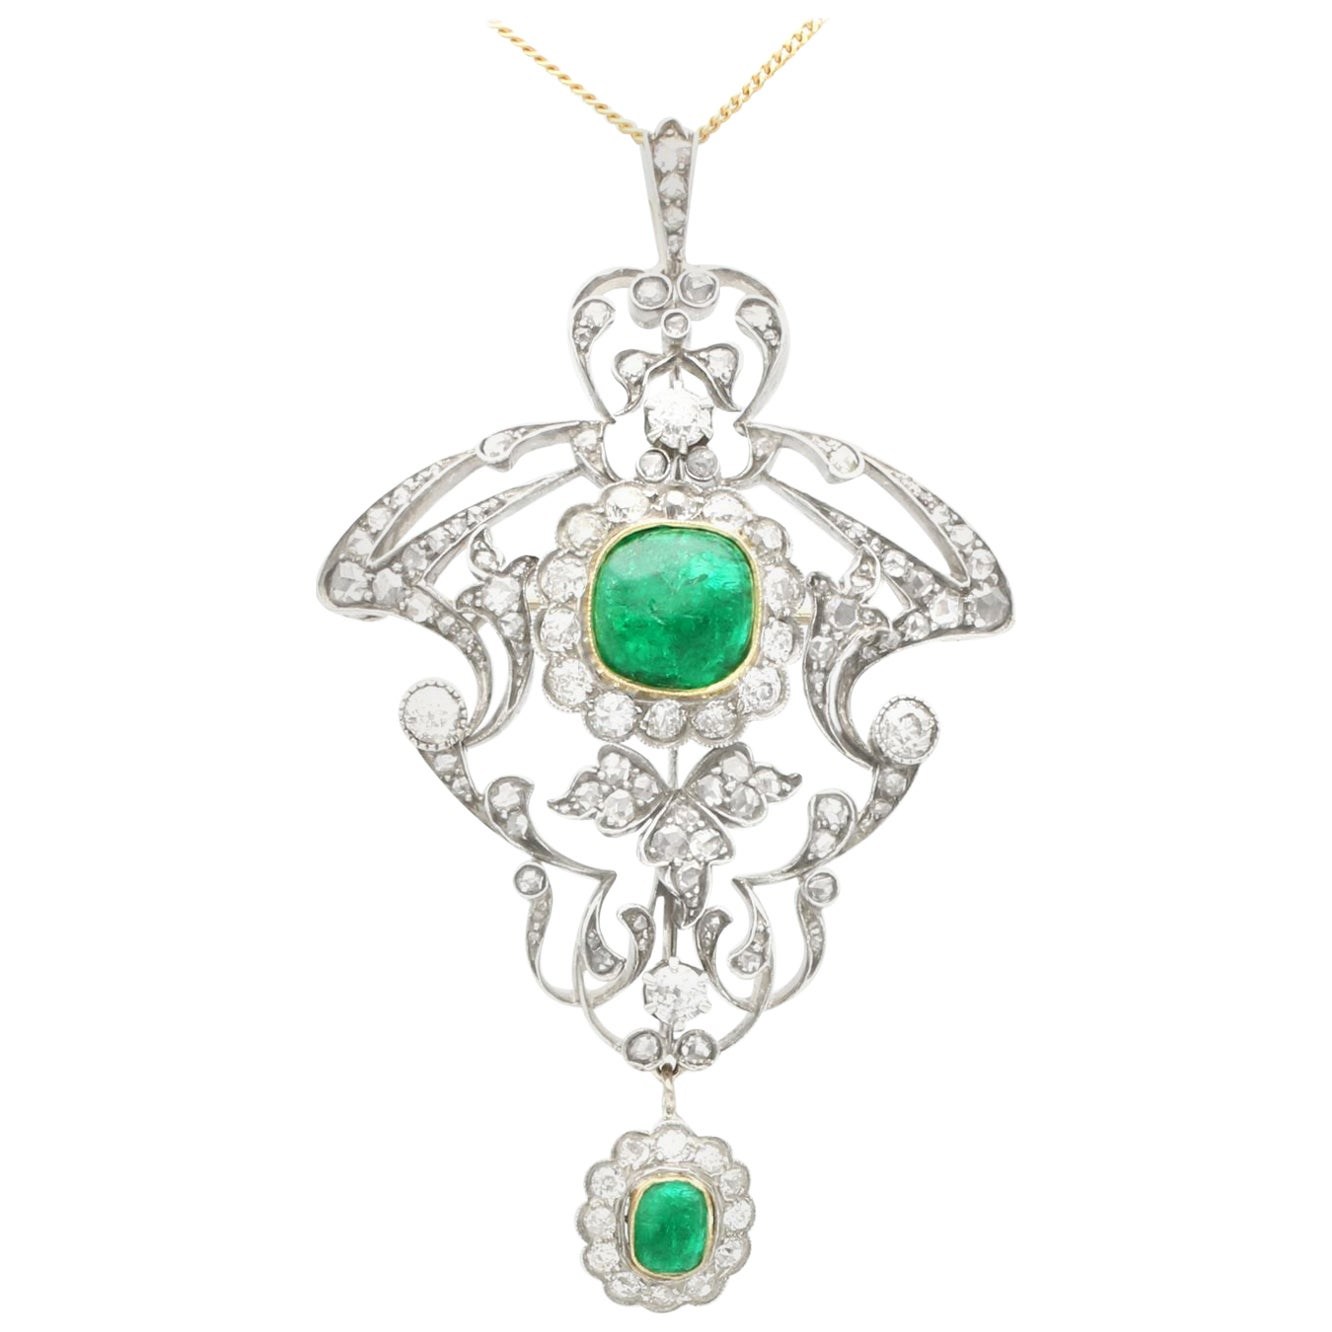 1900s 3.53Ct Emerald and 5.89Ct Diamond Yellow Gold Pendant / Brooch